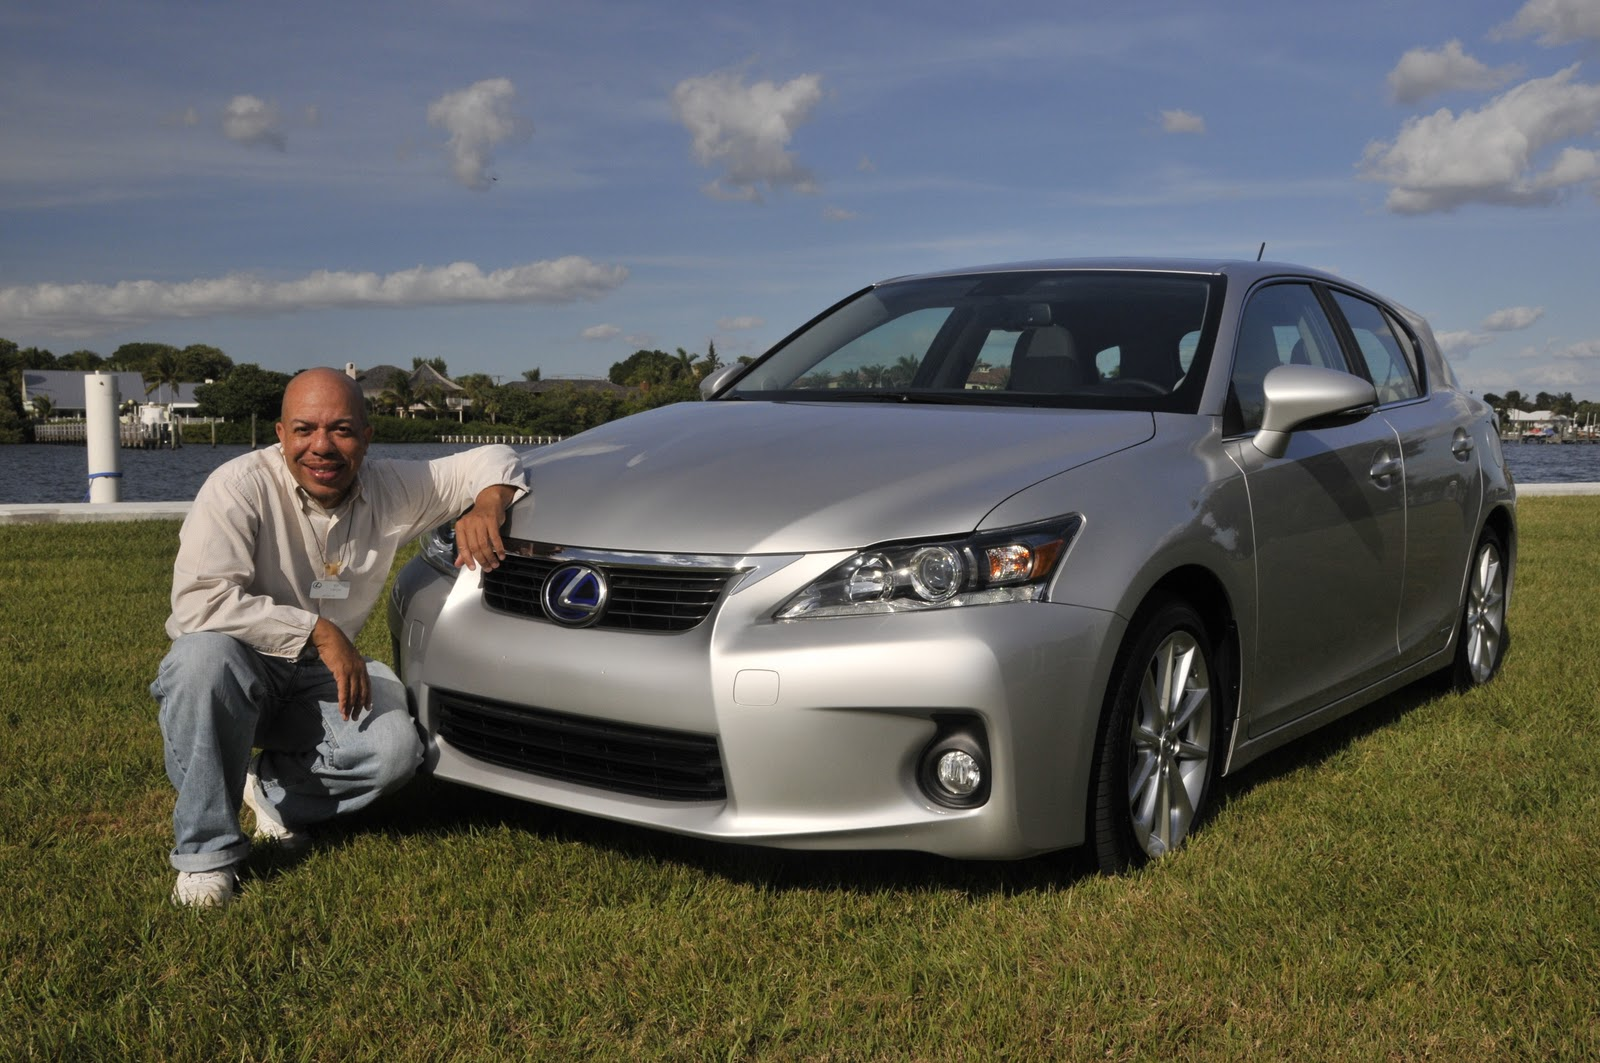 Jeffcarsyour auto industry connection lexus ct 200h luxury lexus ct 200h luxury brand making headway with first sporty hybrid hatchback publicscrutiny Images